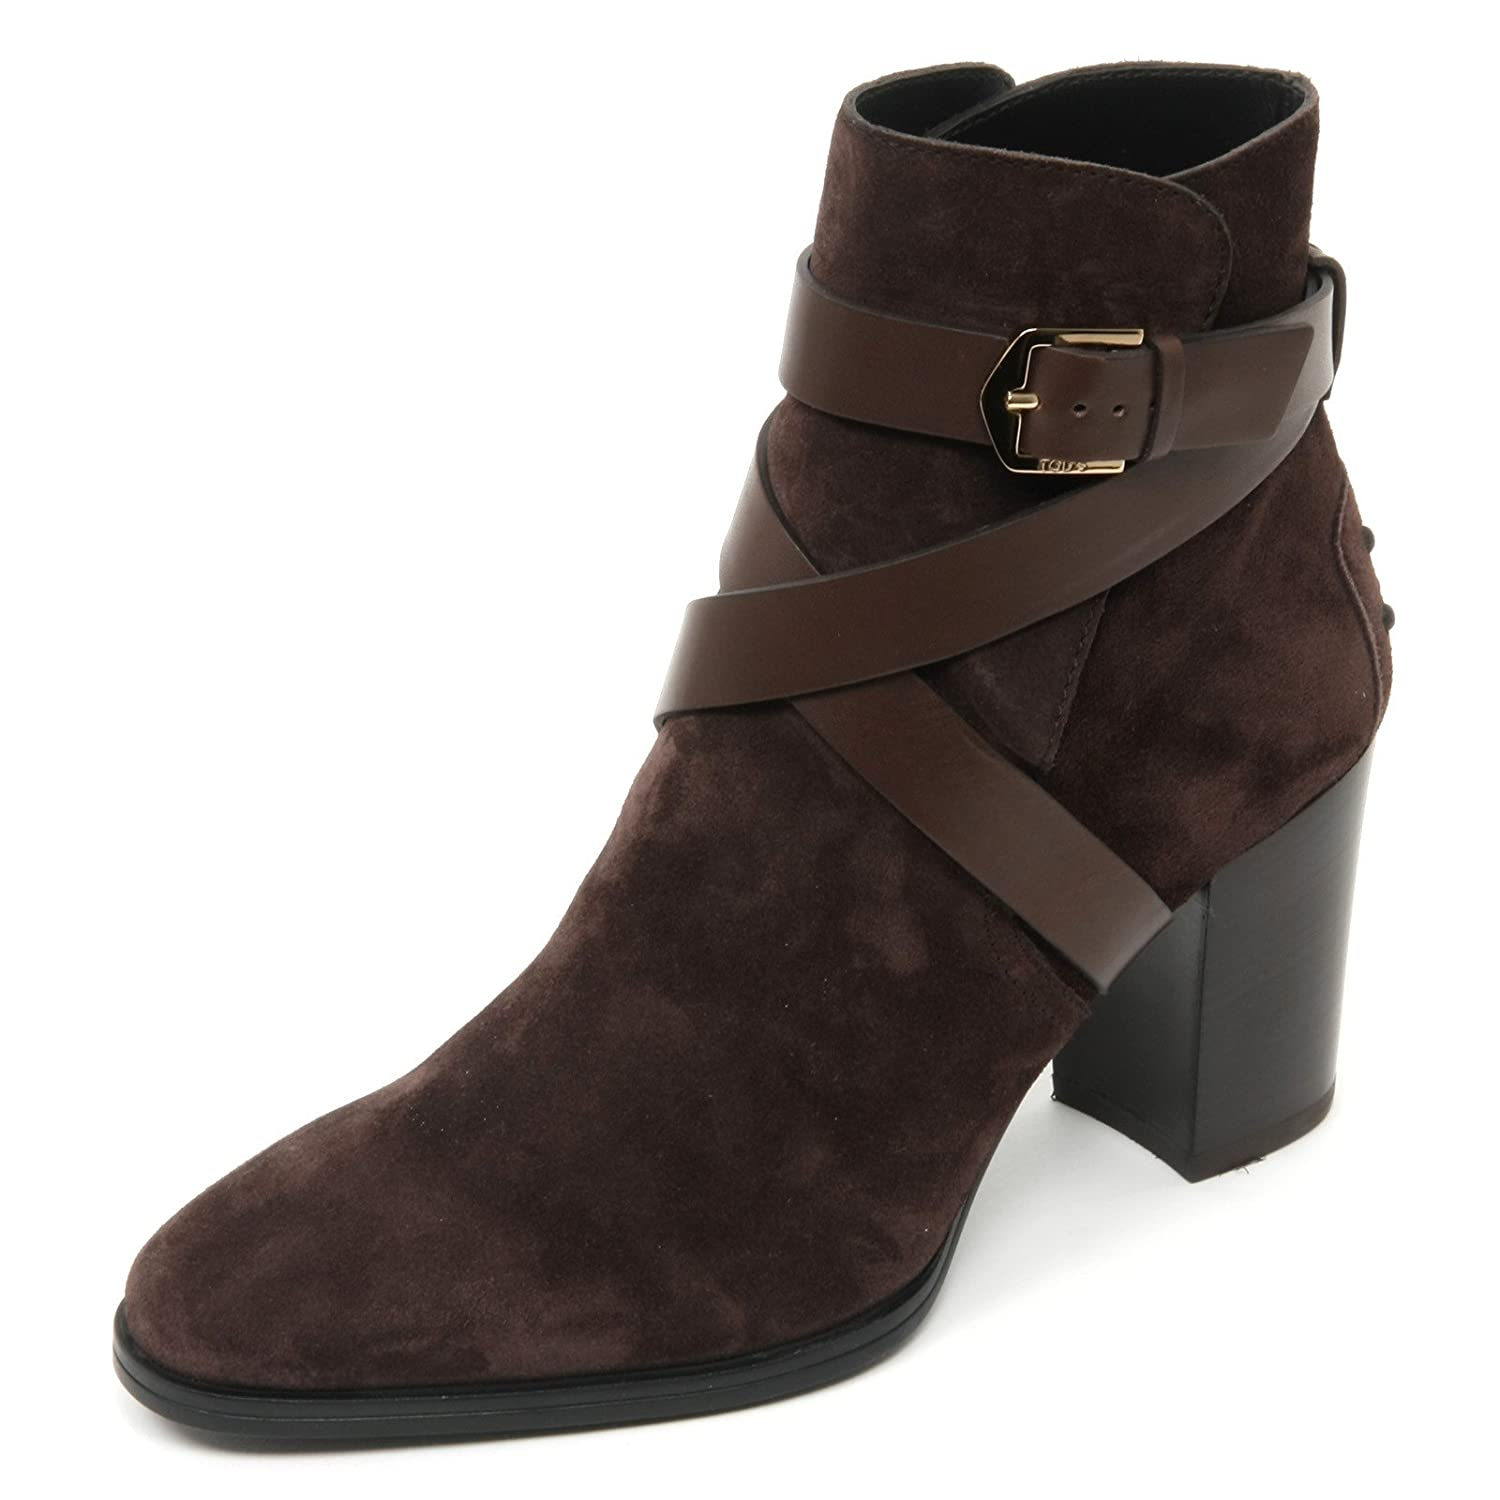 B9046 tronchetto donna TOD'S gomma T70 scarpa marrone scuro shoe boot woman39 EU|marrone scuro